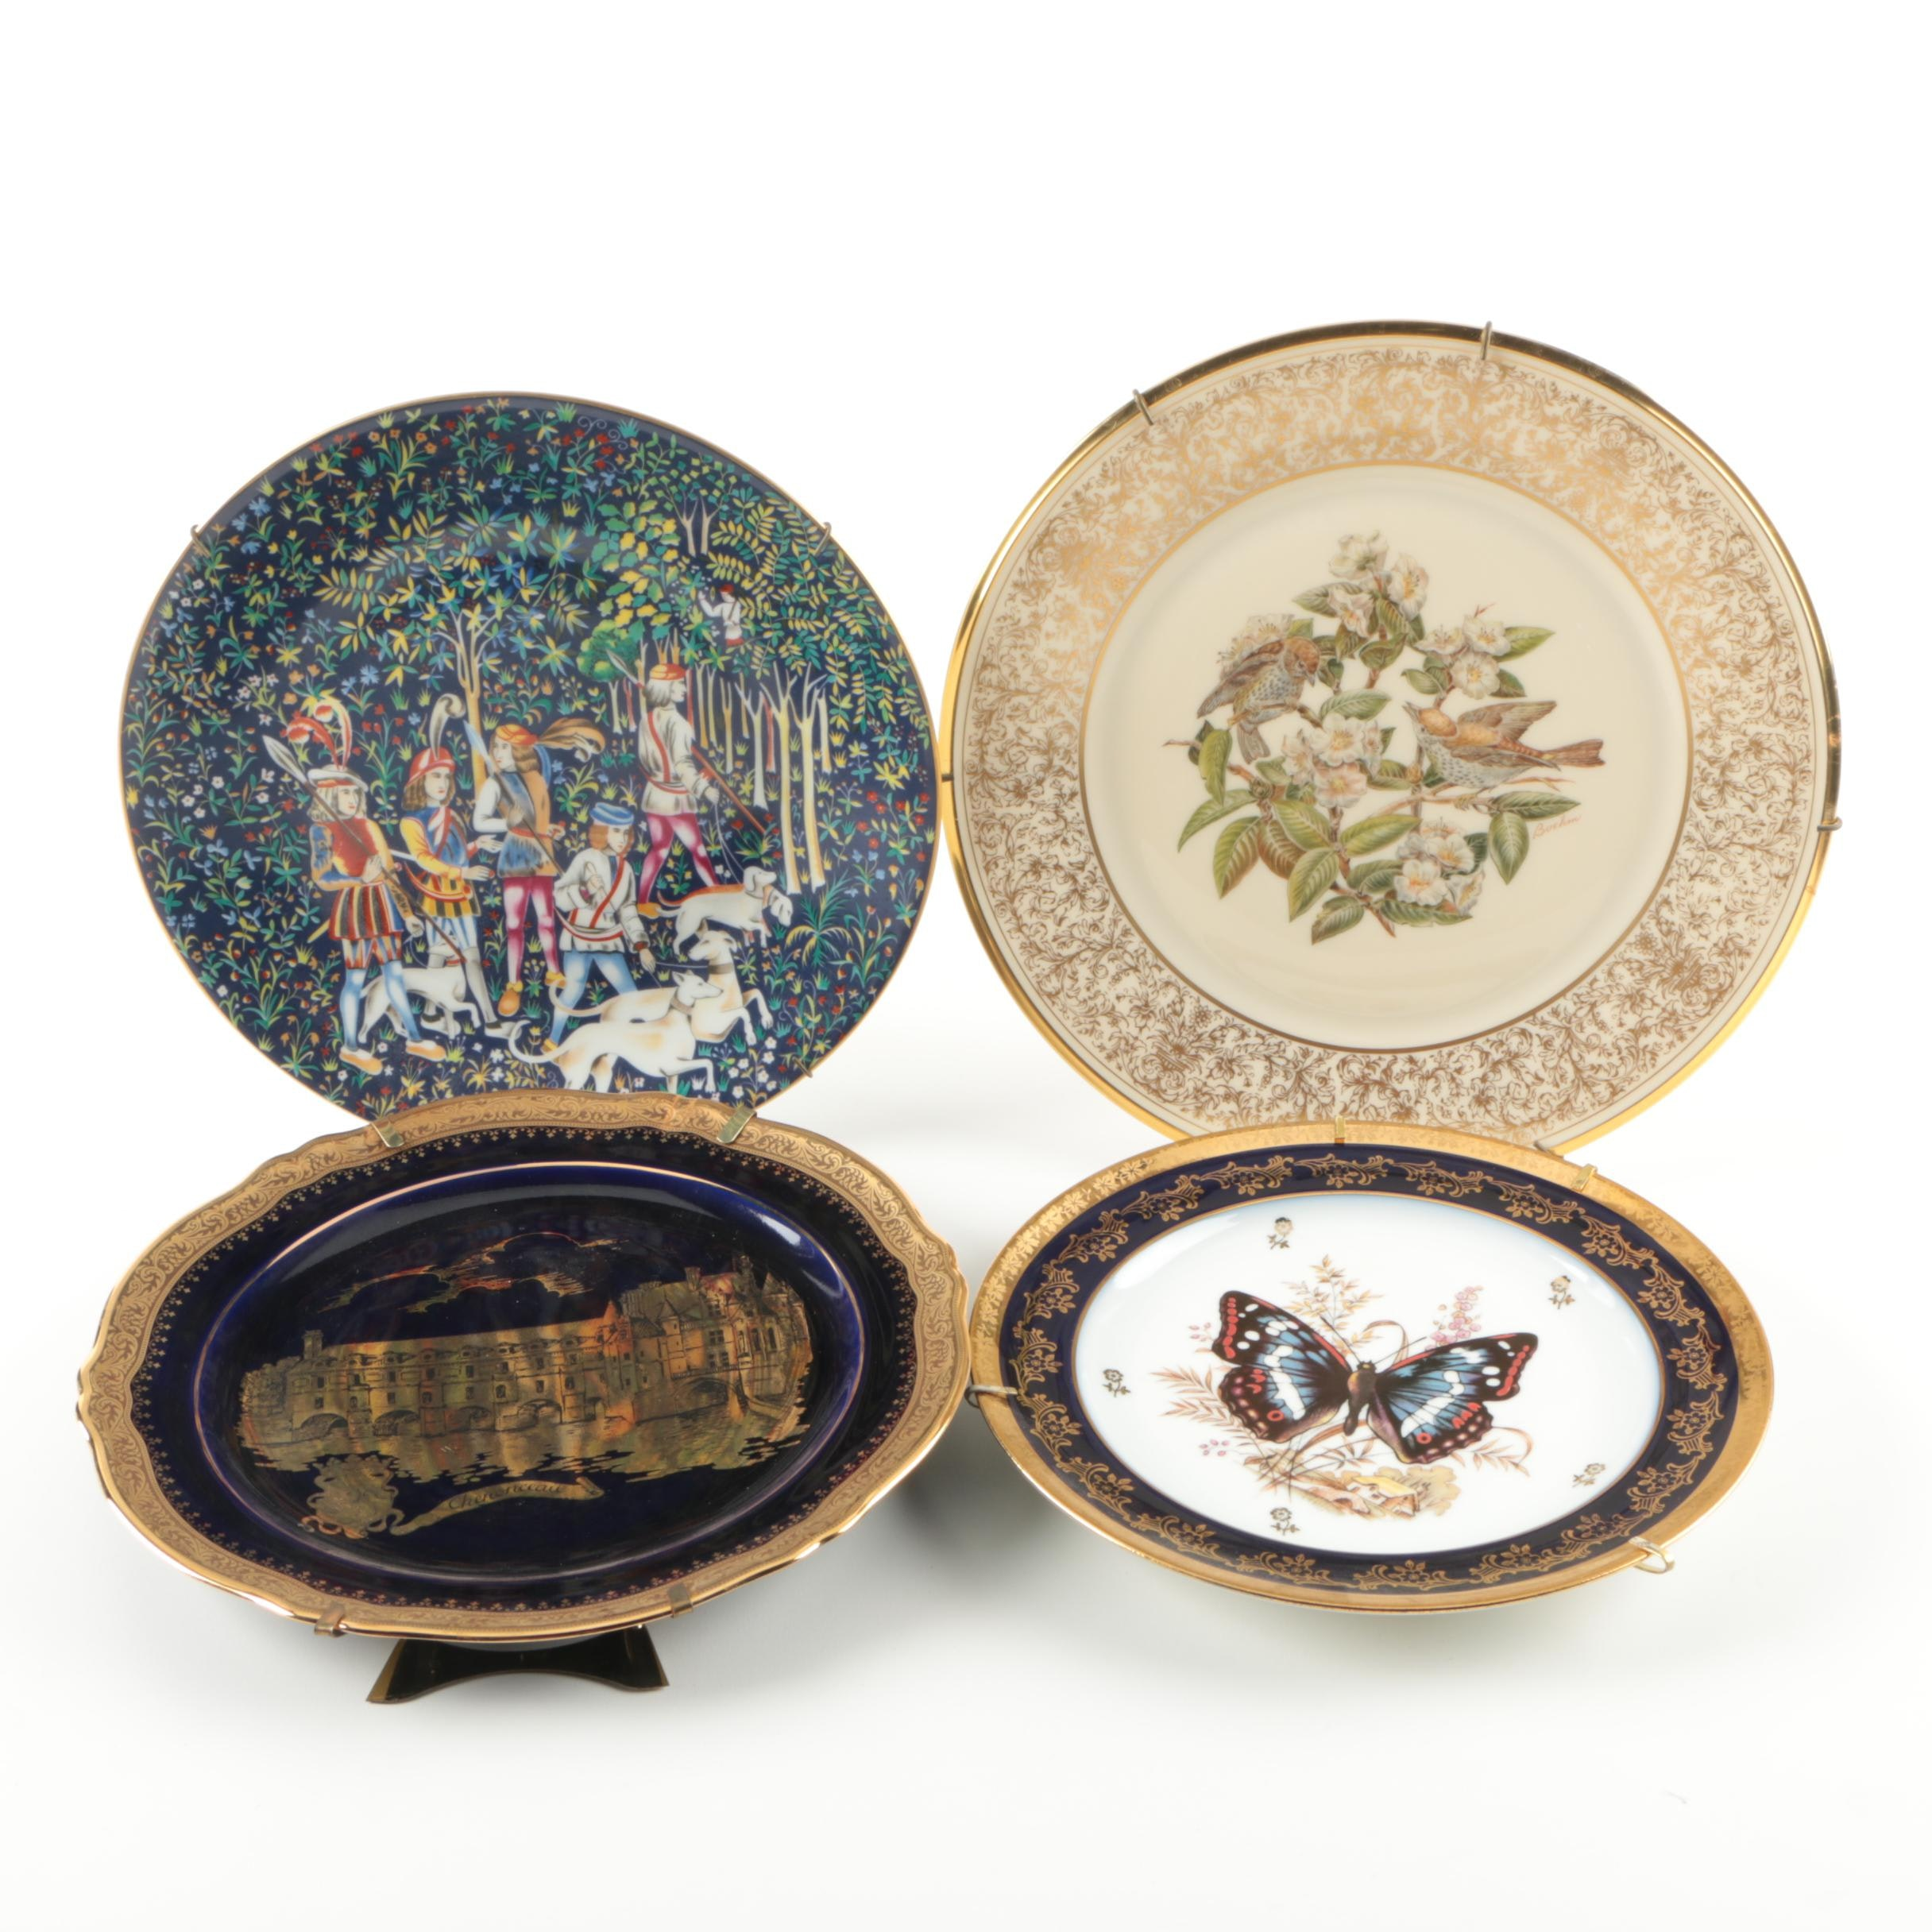 "Decorative Plates Including Haviland ""La Chasse a' la Licorne"" and Lenox"